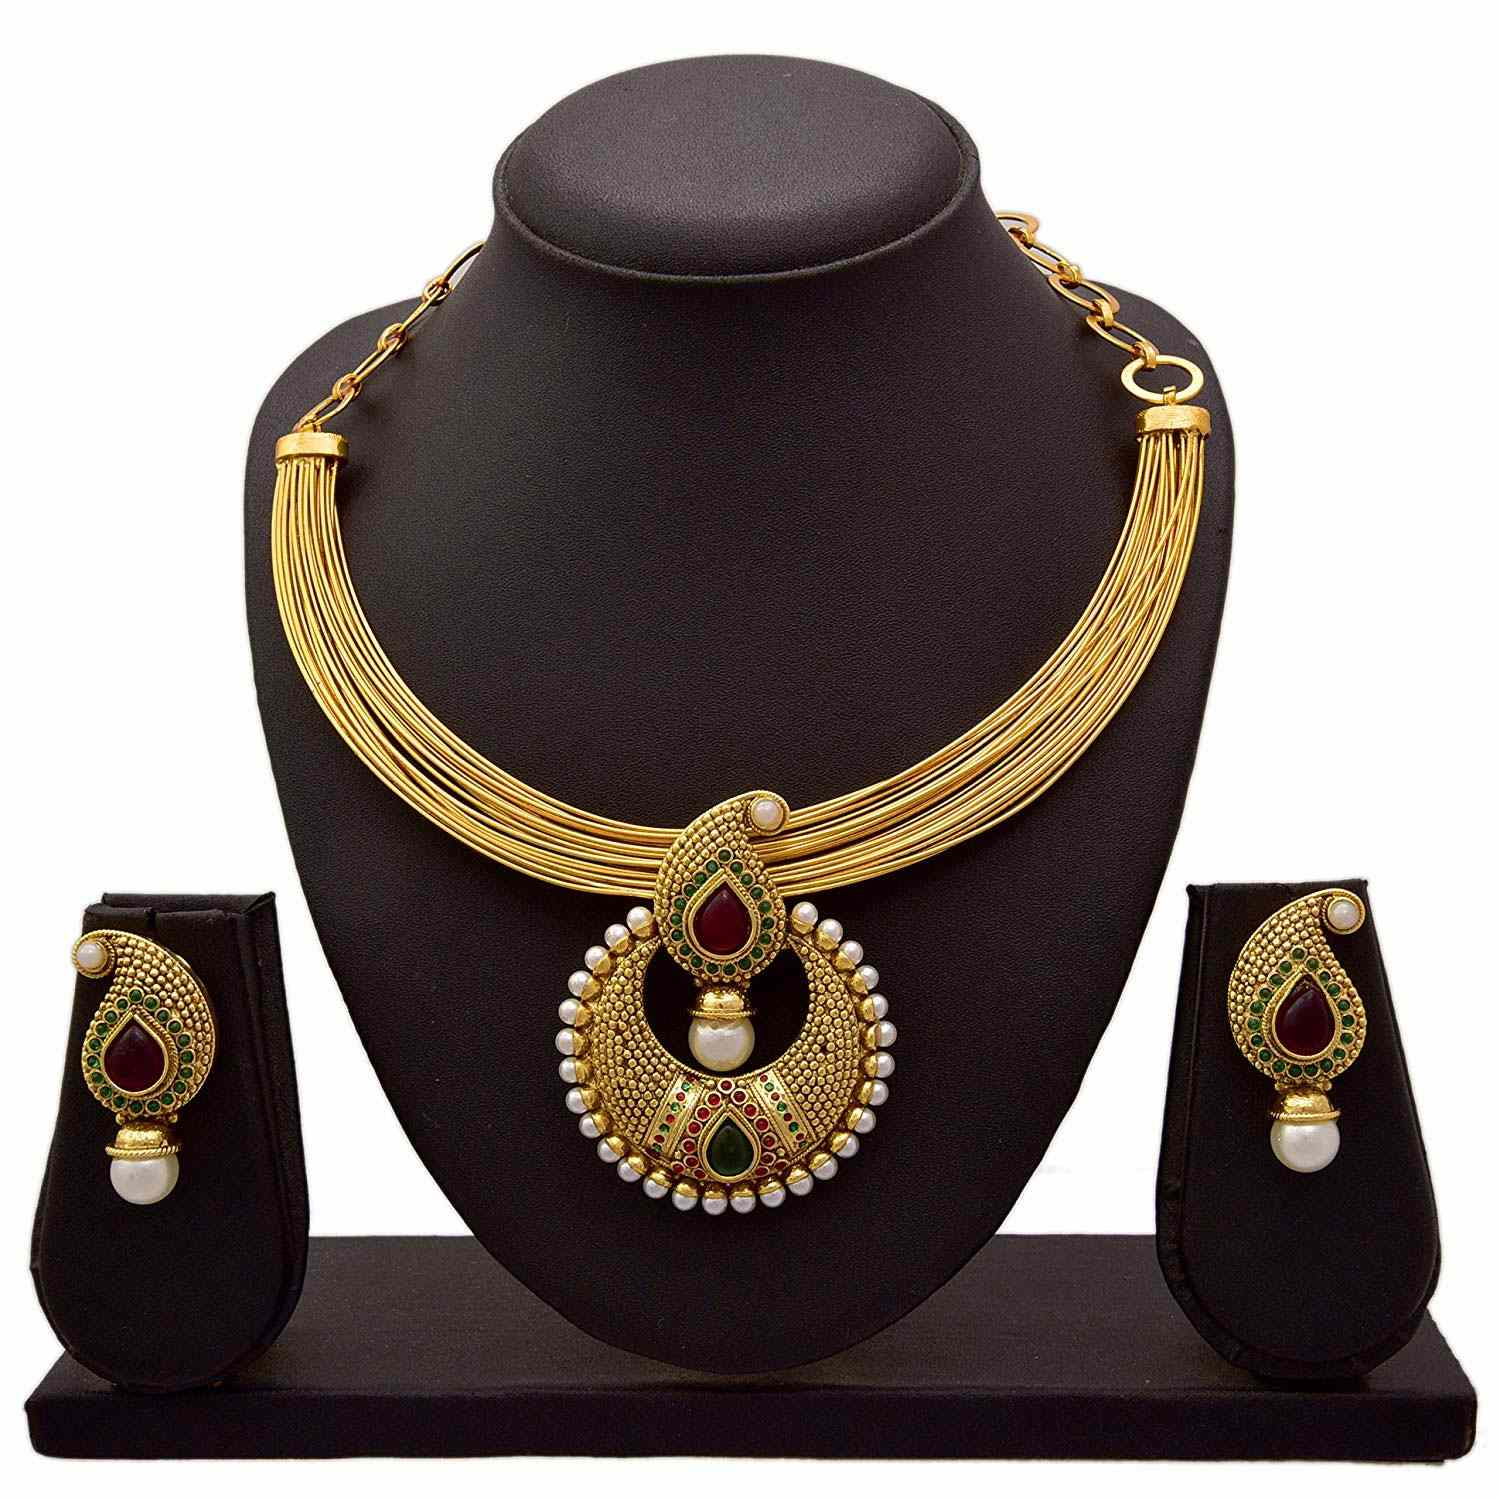 JFL - Traditional, Ethnic ruby Red Green One Gram Gold Plated Designer Kaerie Necklace Set for Women & Girls